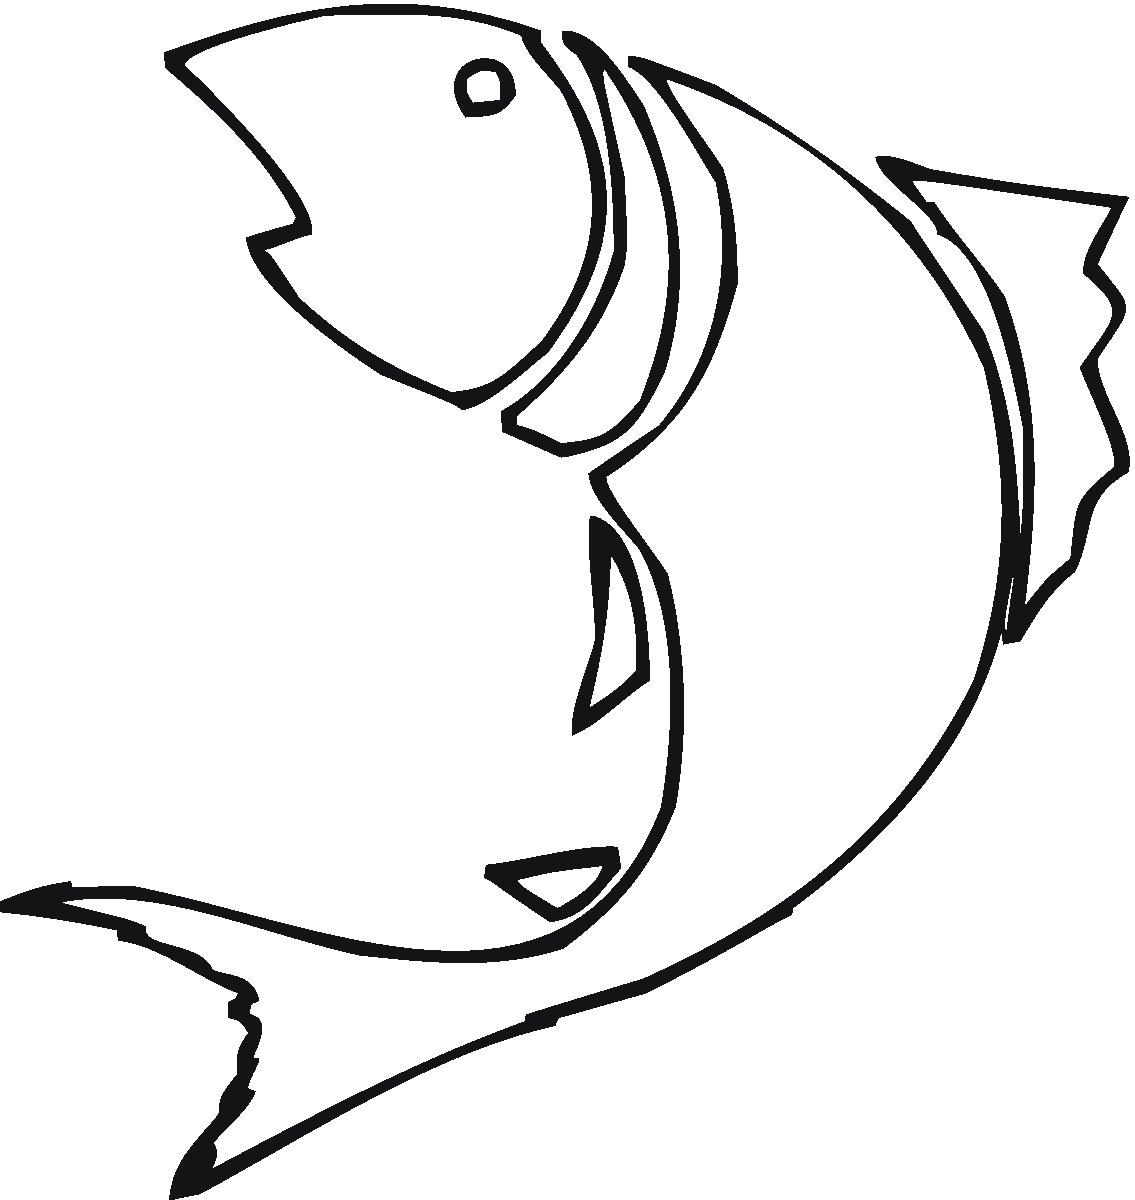 1135x1200 Bass Fish Outline Clip Art Free Clipart Images